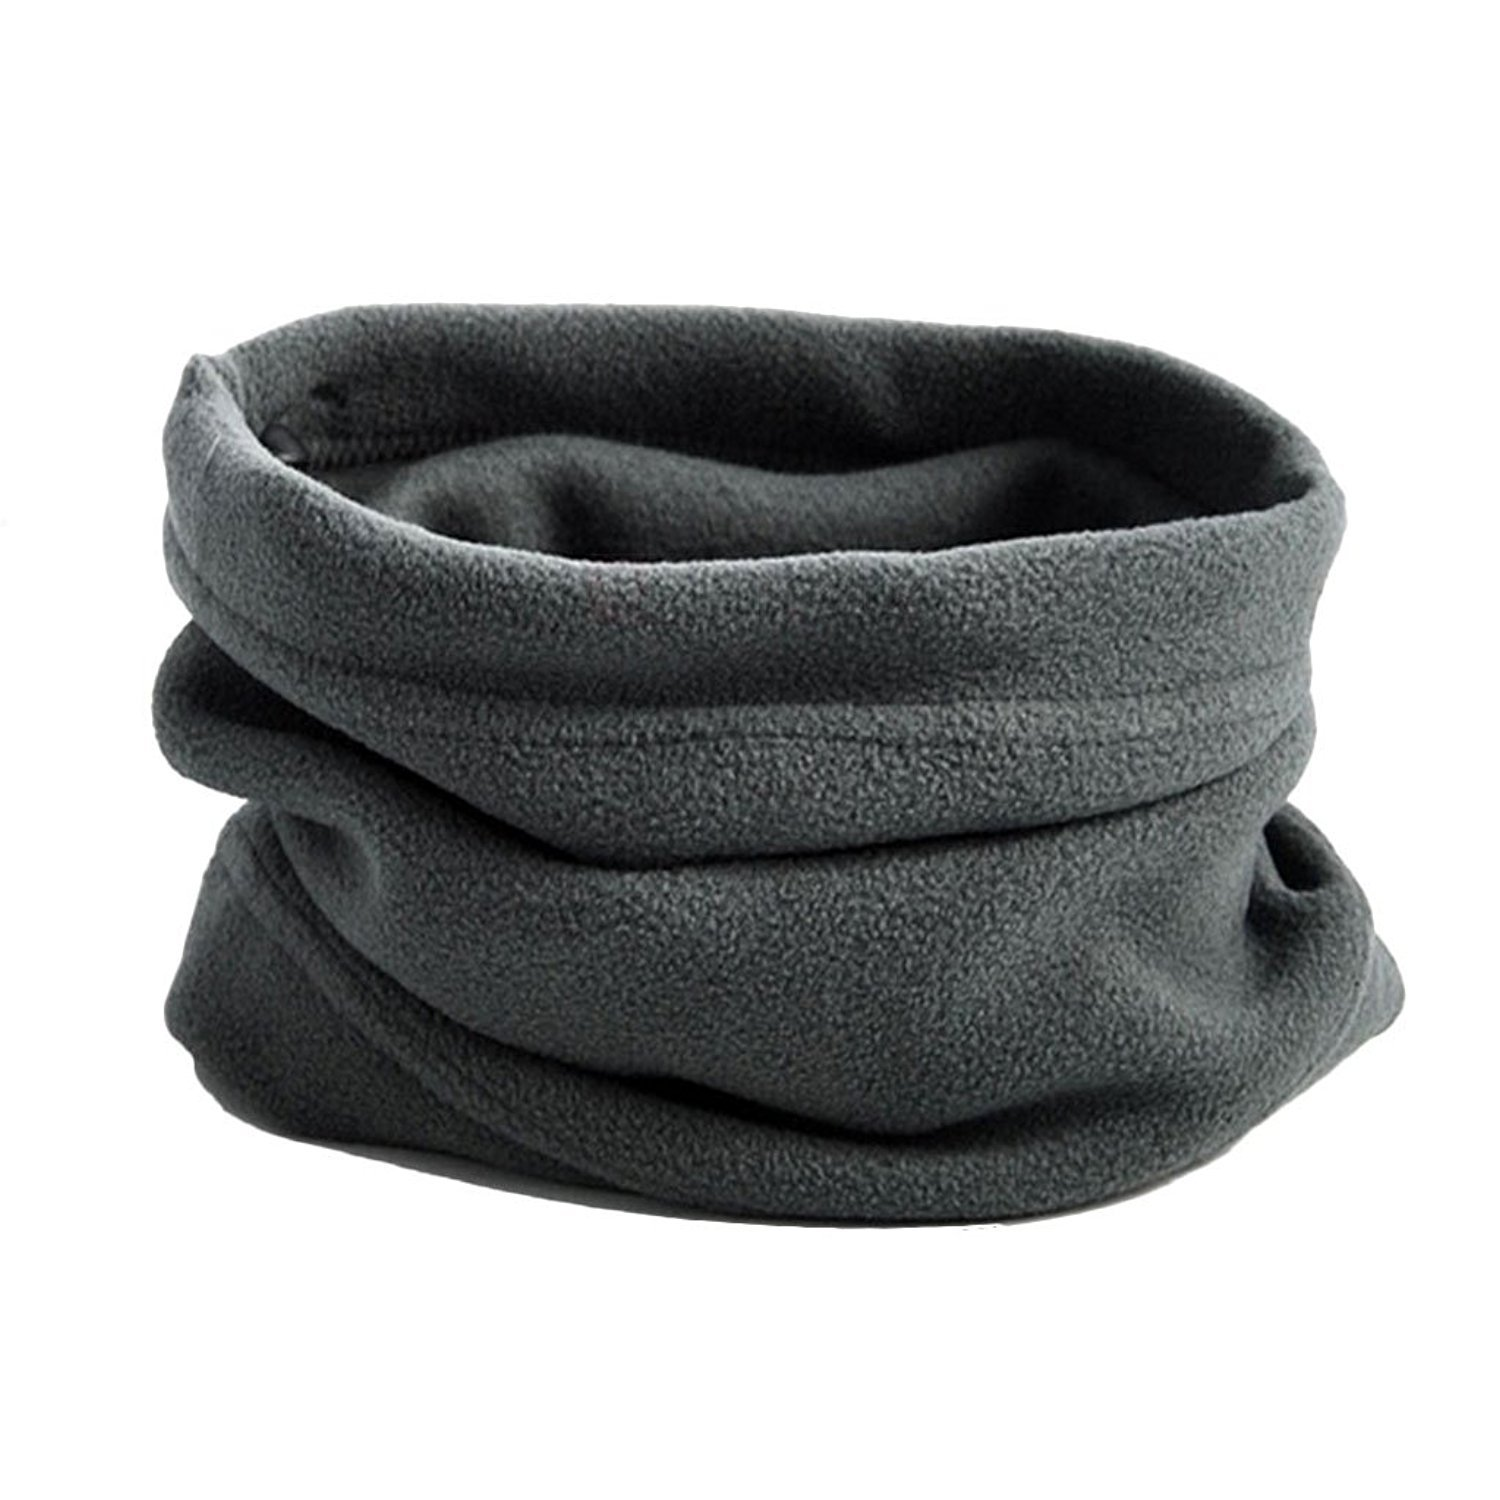 Fleece Neck Warmer Face Mask for Cold Weather Ski Mask Face Shield Headgear Balaclava for Warmth Outdoors, One Size Fits All (Gray)